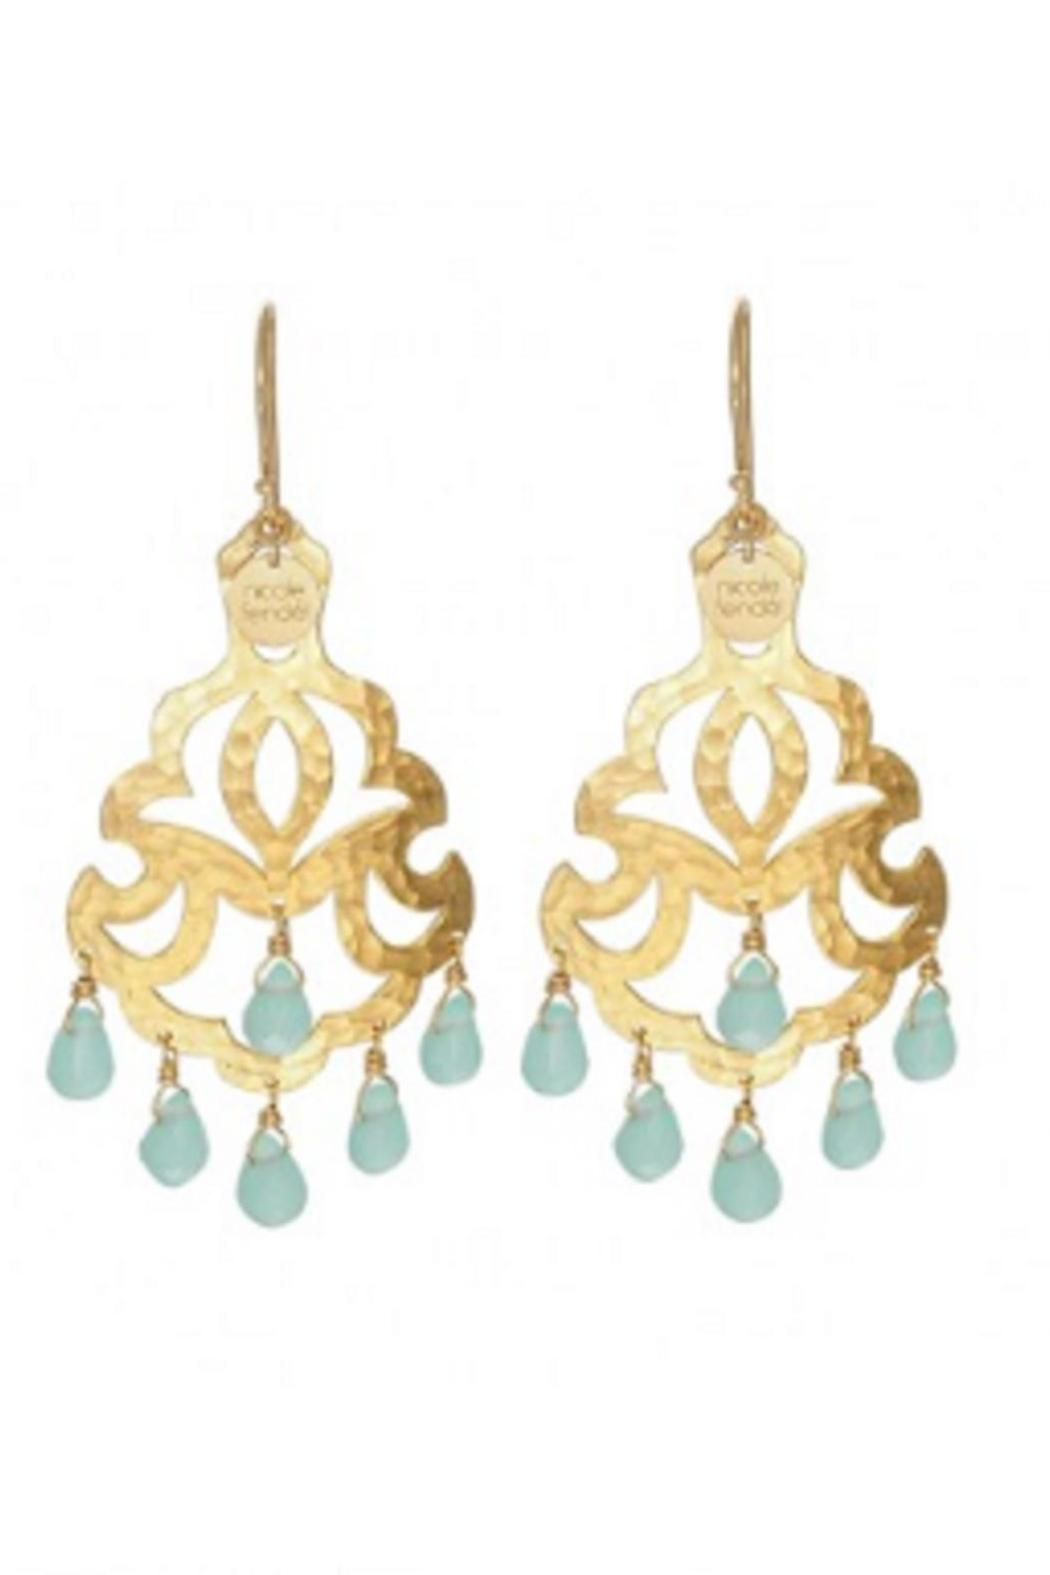 5cc1603f4 Nicole Fendel Large Boho Earrings from New South Wales by Little ...